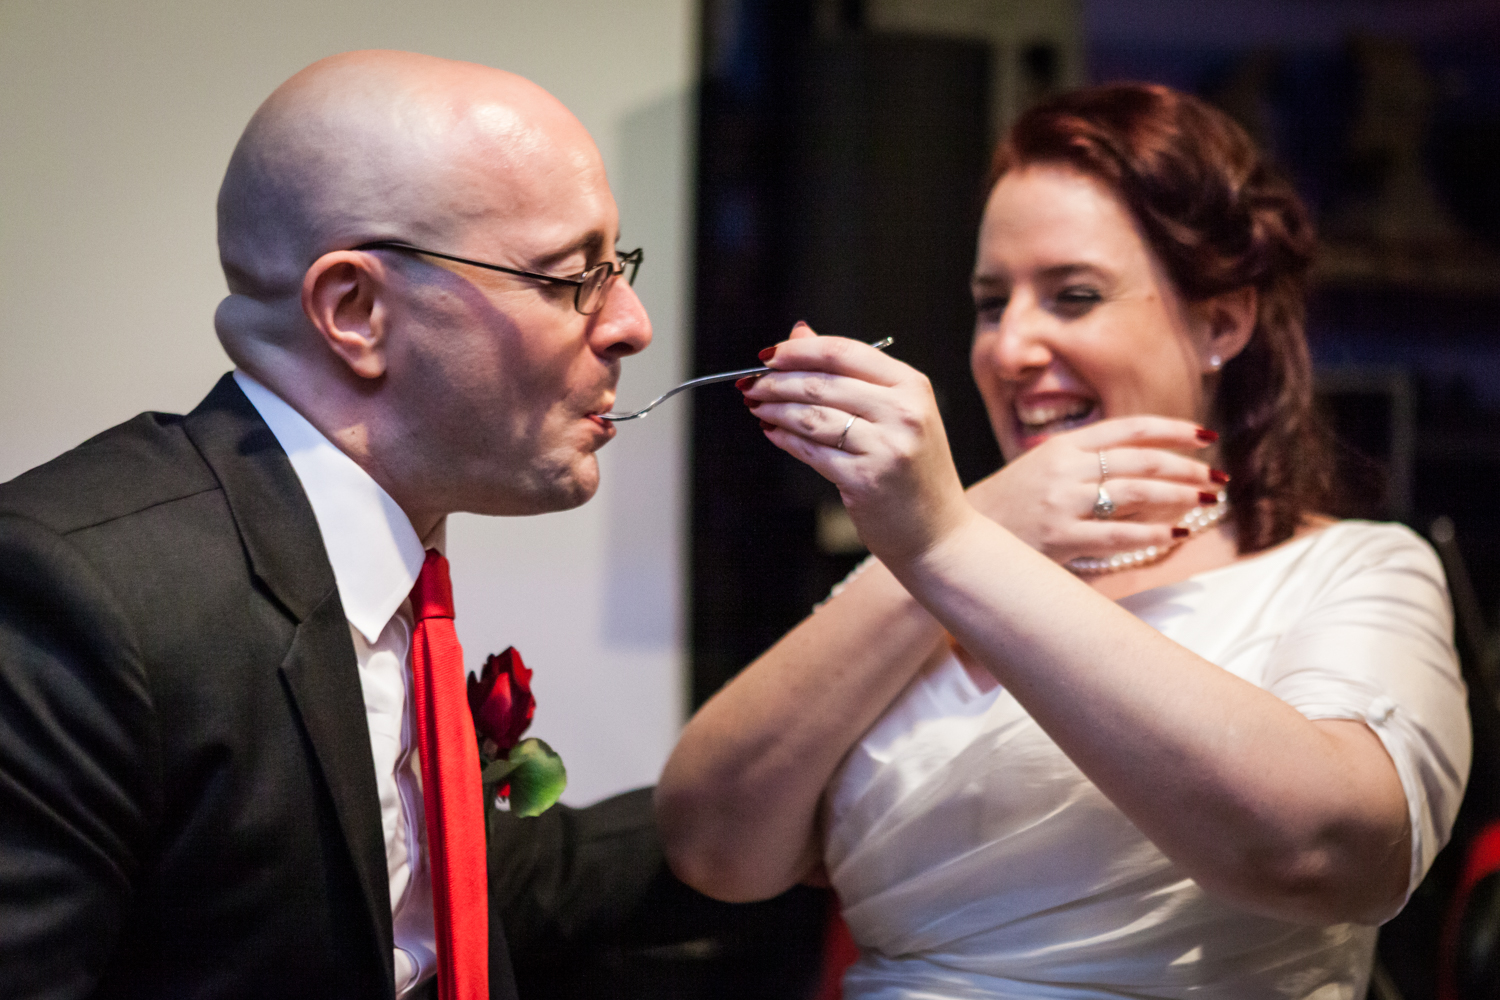 Bride feeding cake to groom at a DUMBO wedding